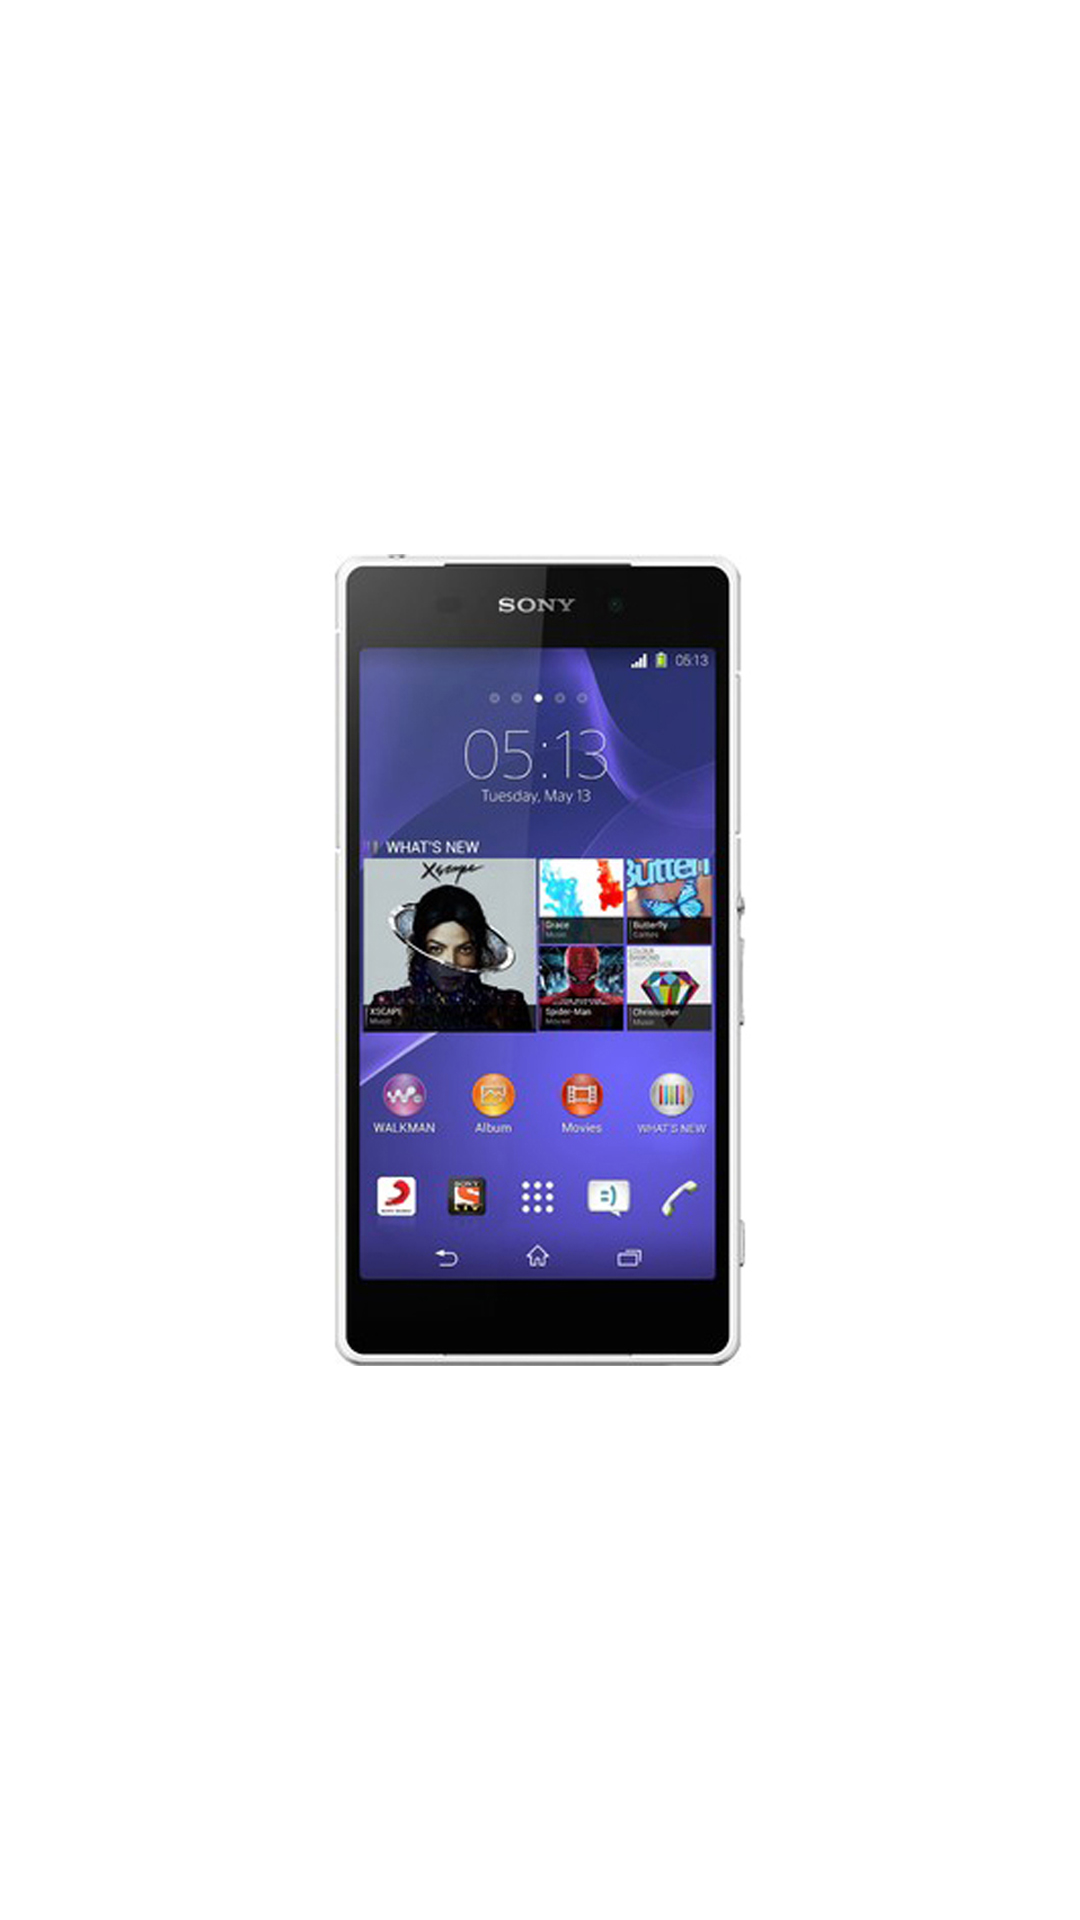 Sony Xperia Z2 Single SIM 16 GB (White)